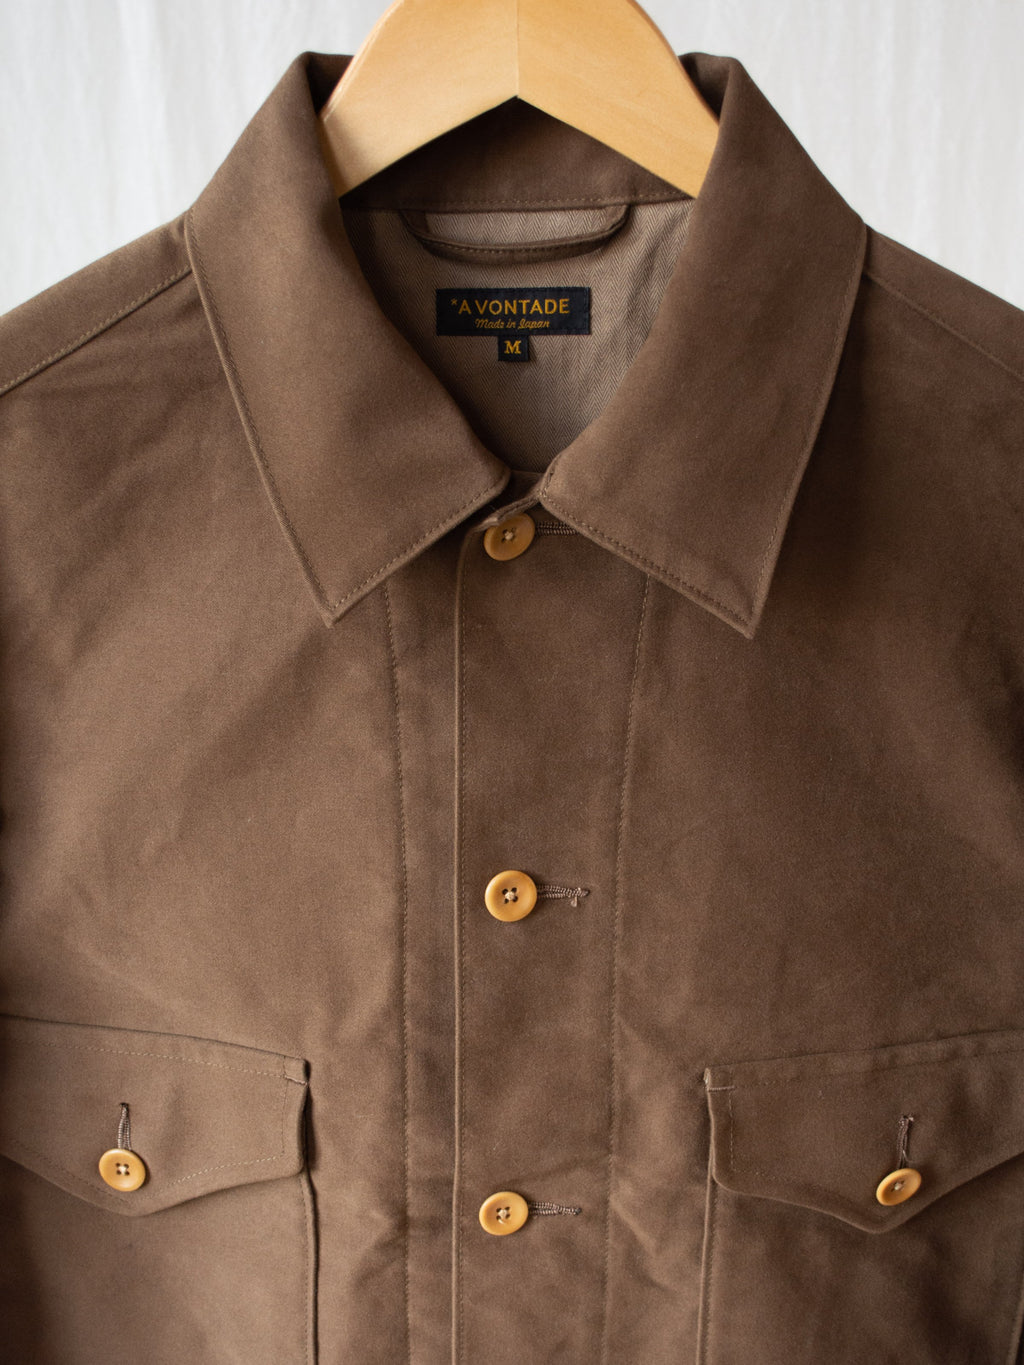 Namu Shop - A Vontade Ike Short Jacket - Cigar Brown